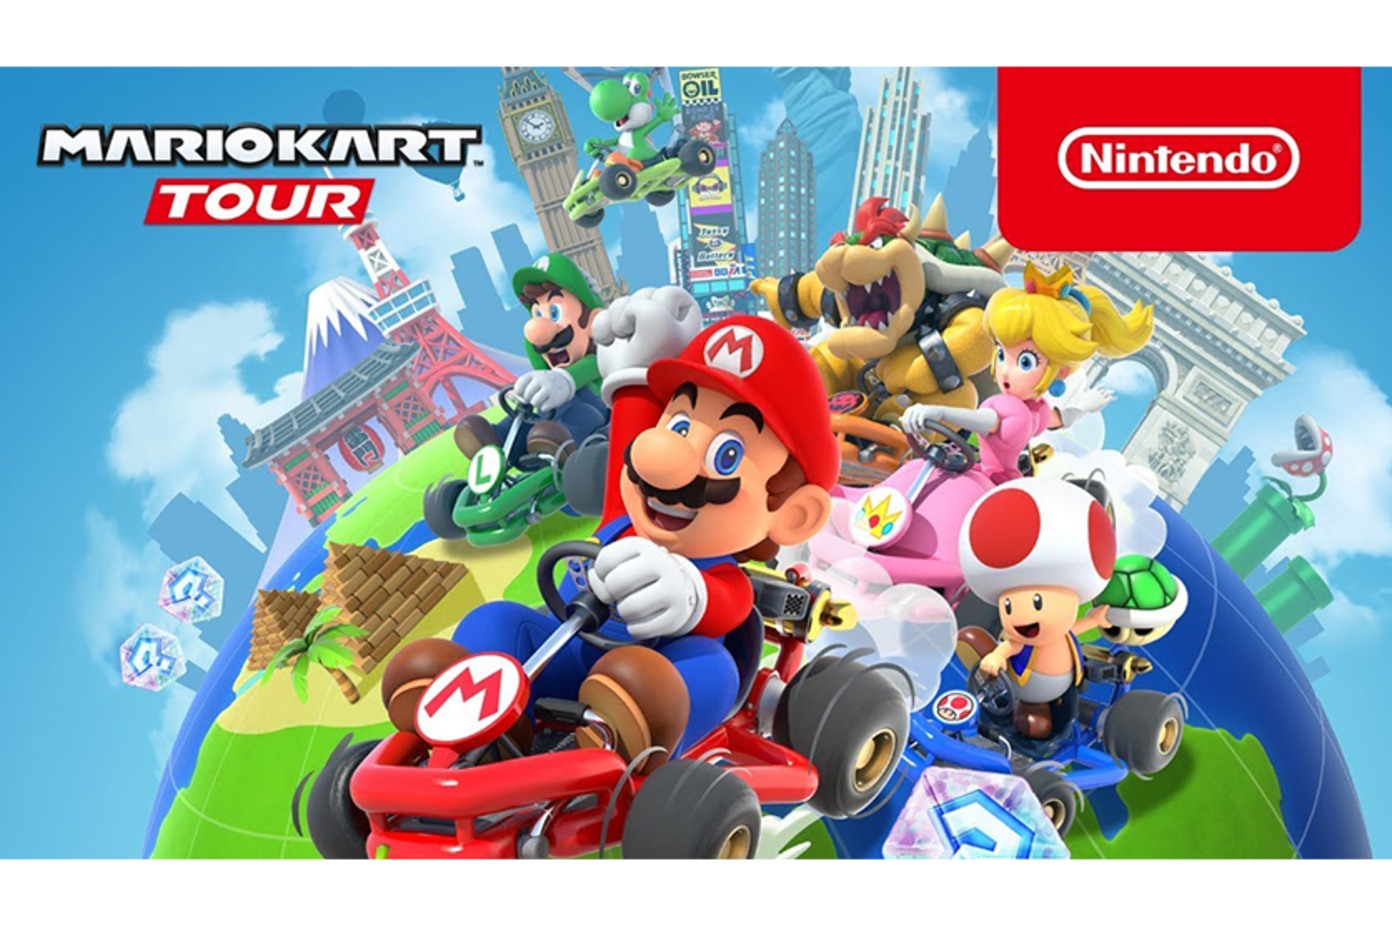 Mario Kart Coming to Mobile